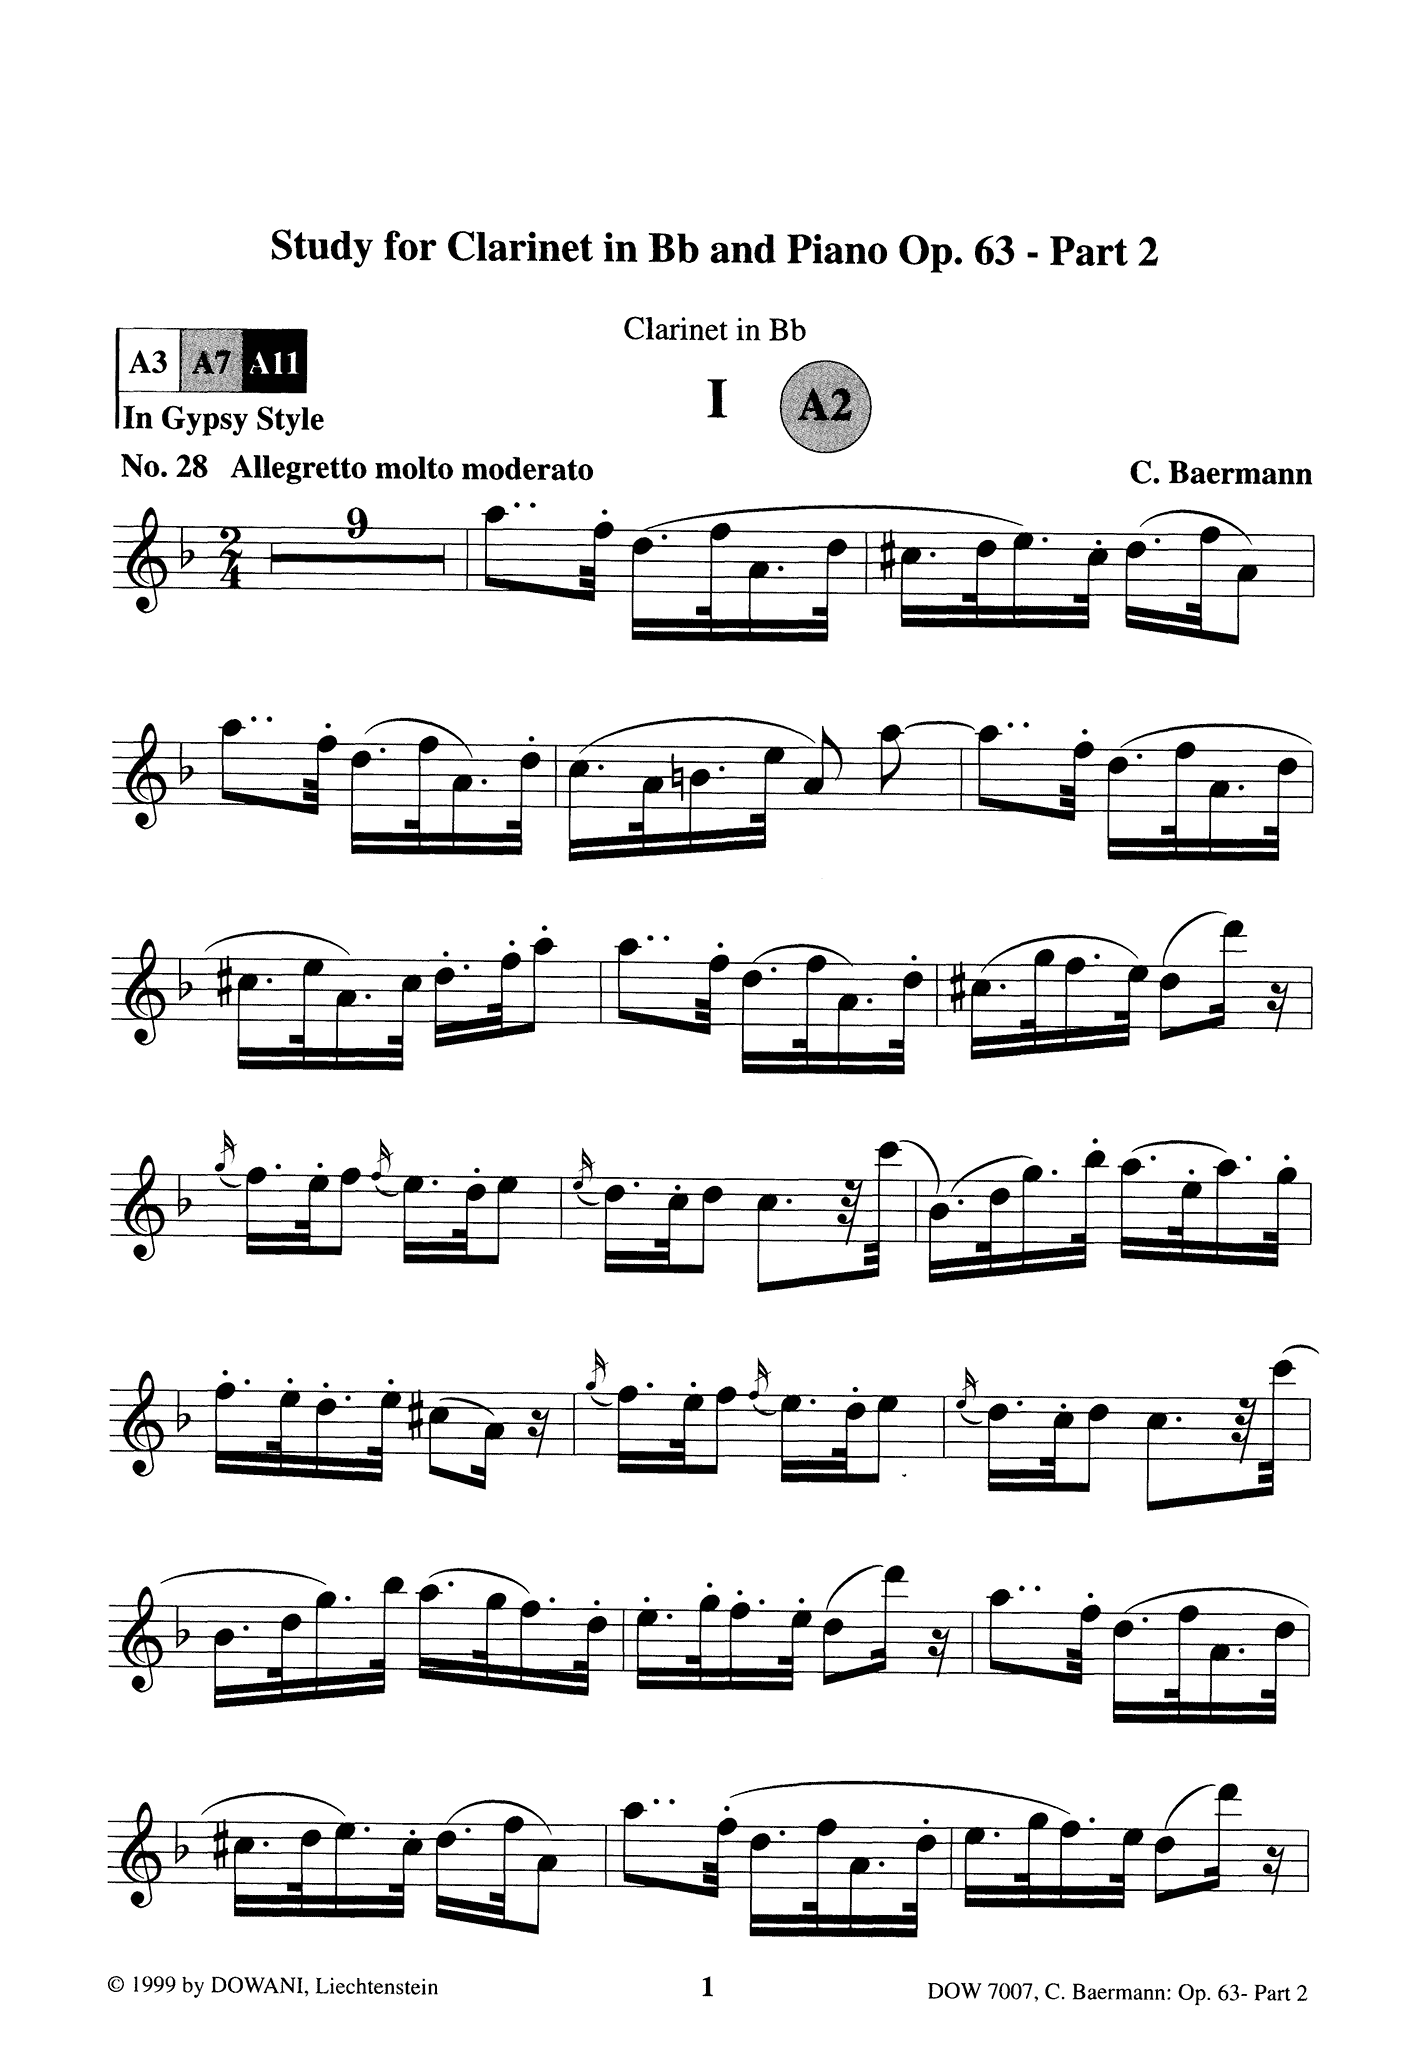 Clarinet Method, Op. 63, Div. II: Part 2 of 3 Clarinet part Page 1